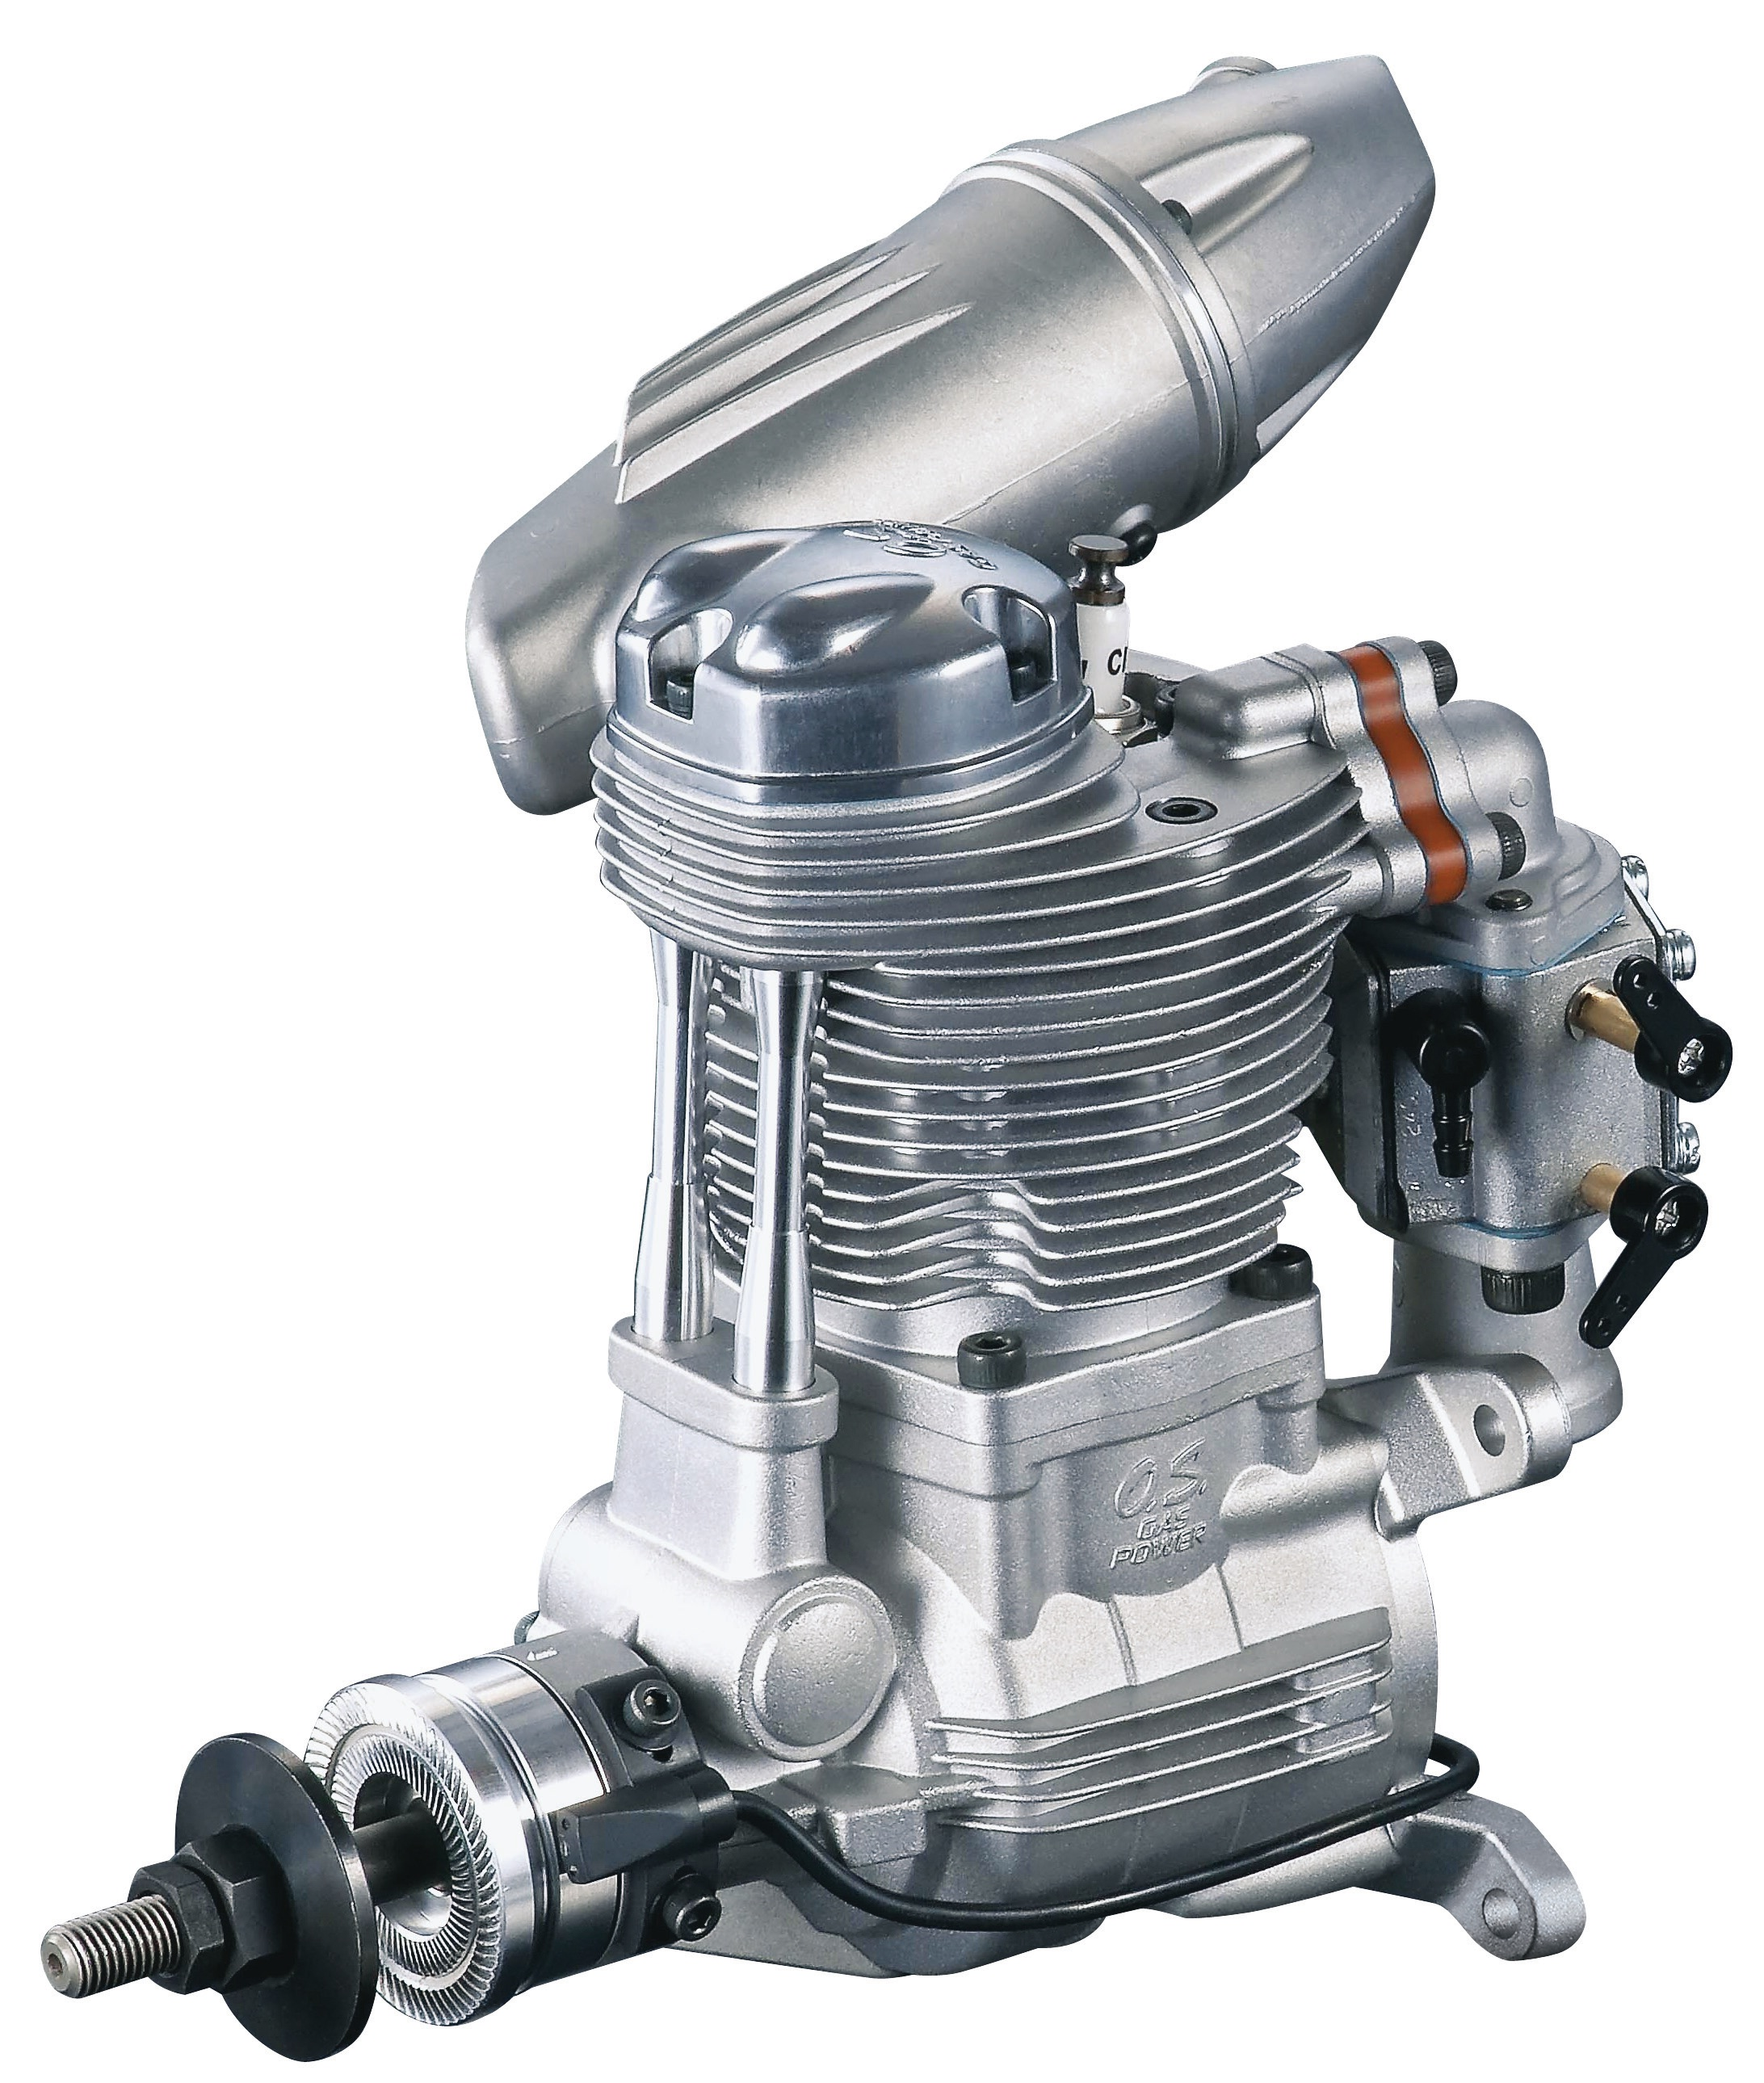 GF40 Gasoline Engine from O.S. Engines